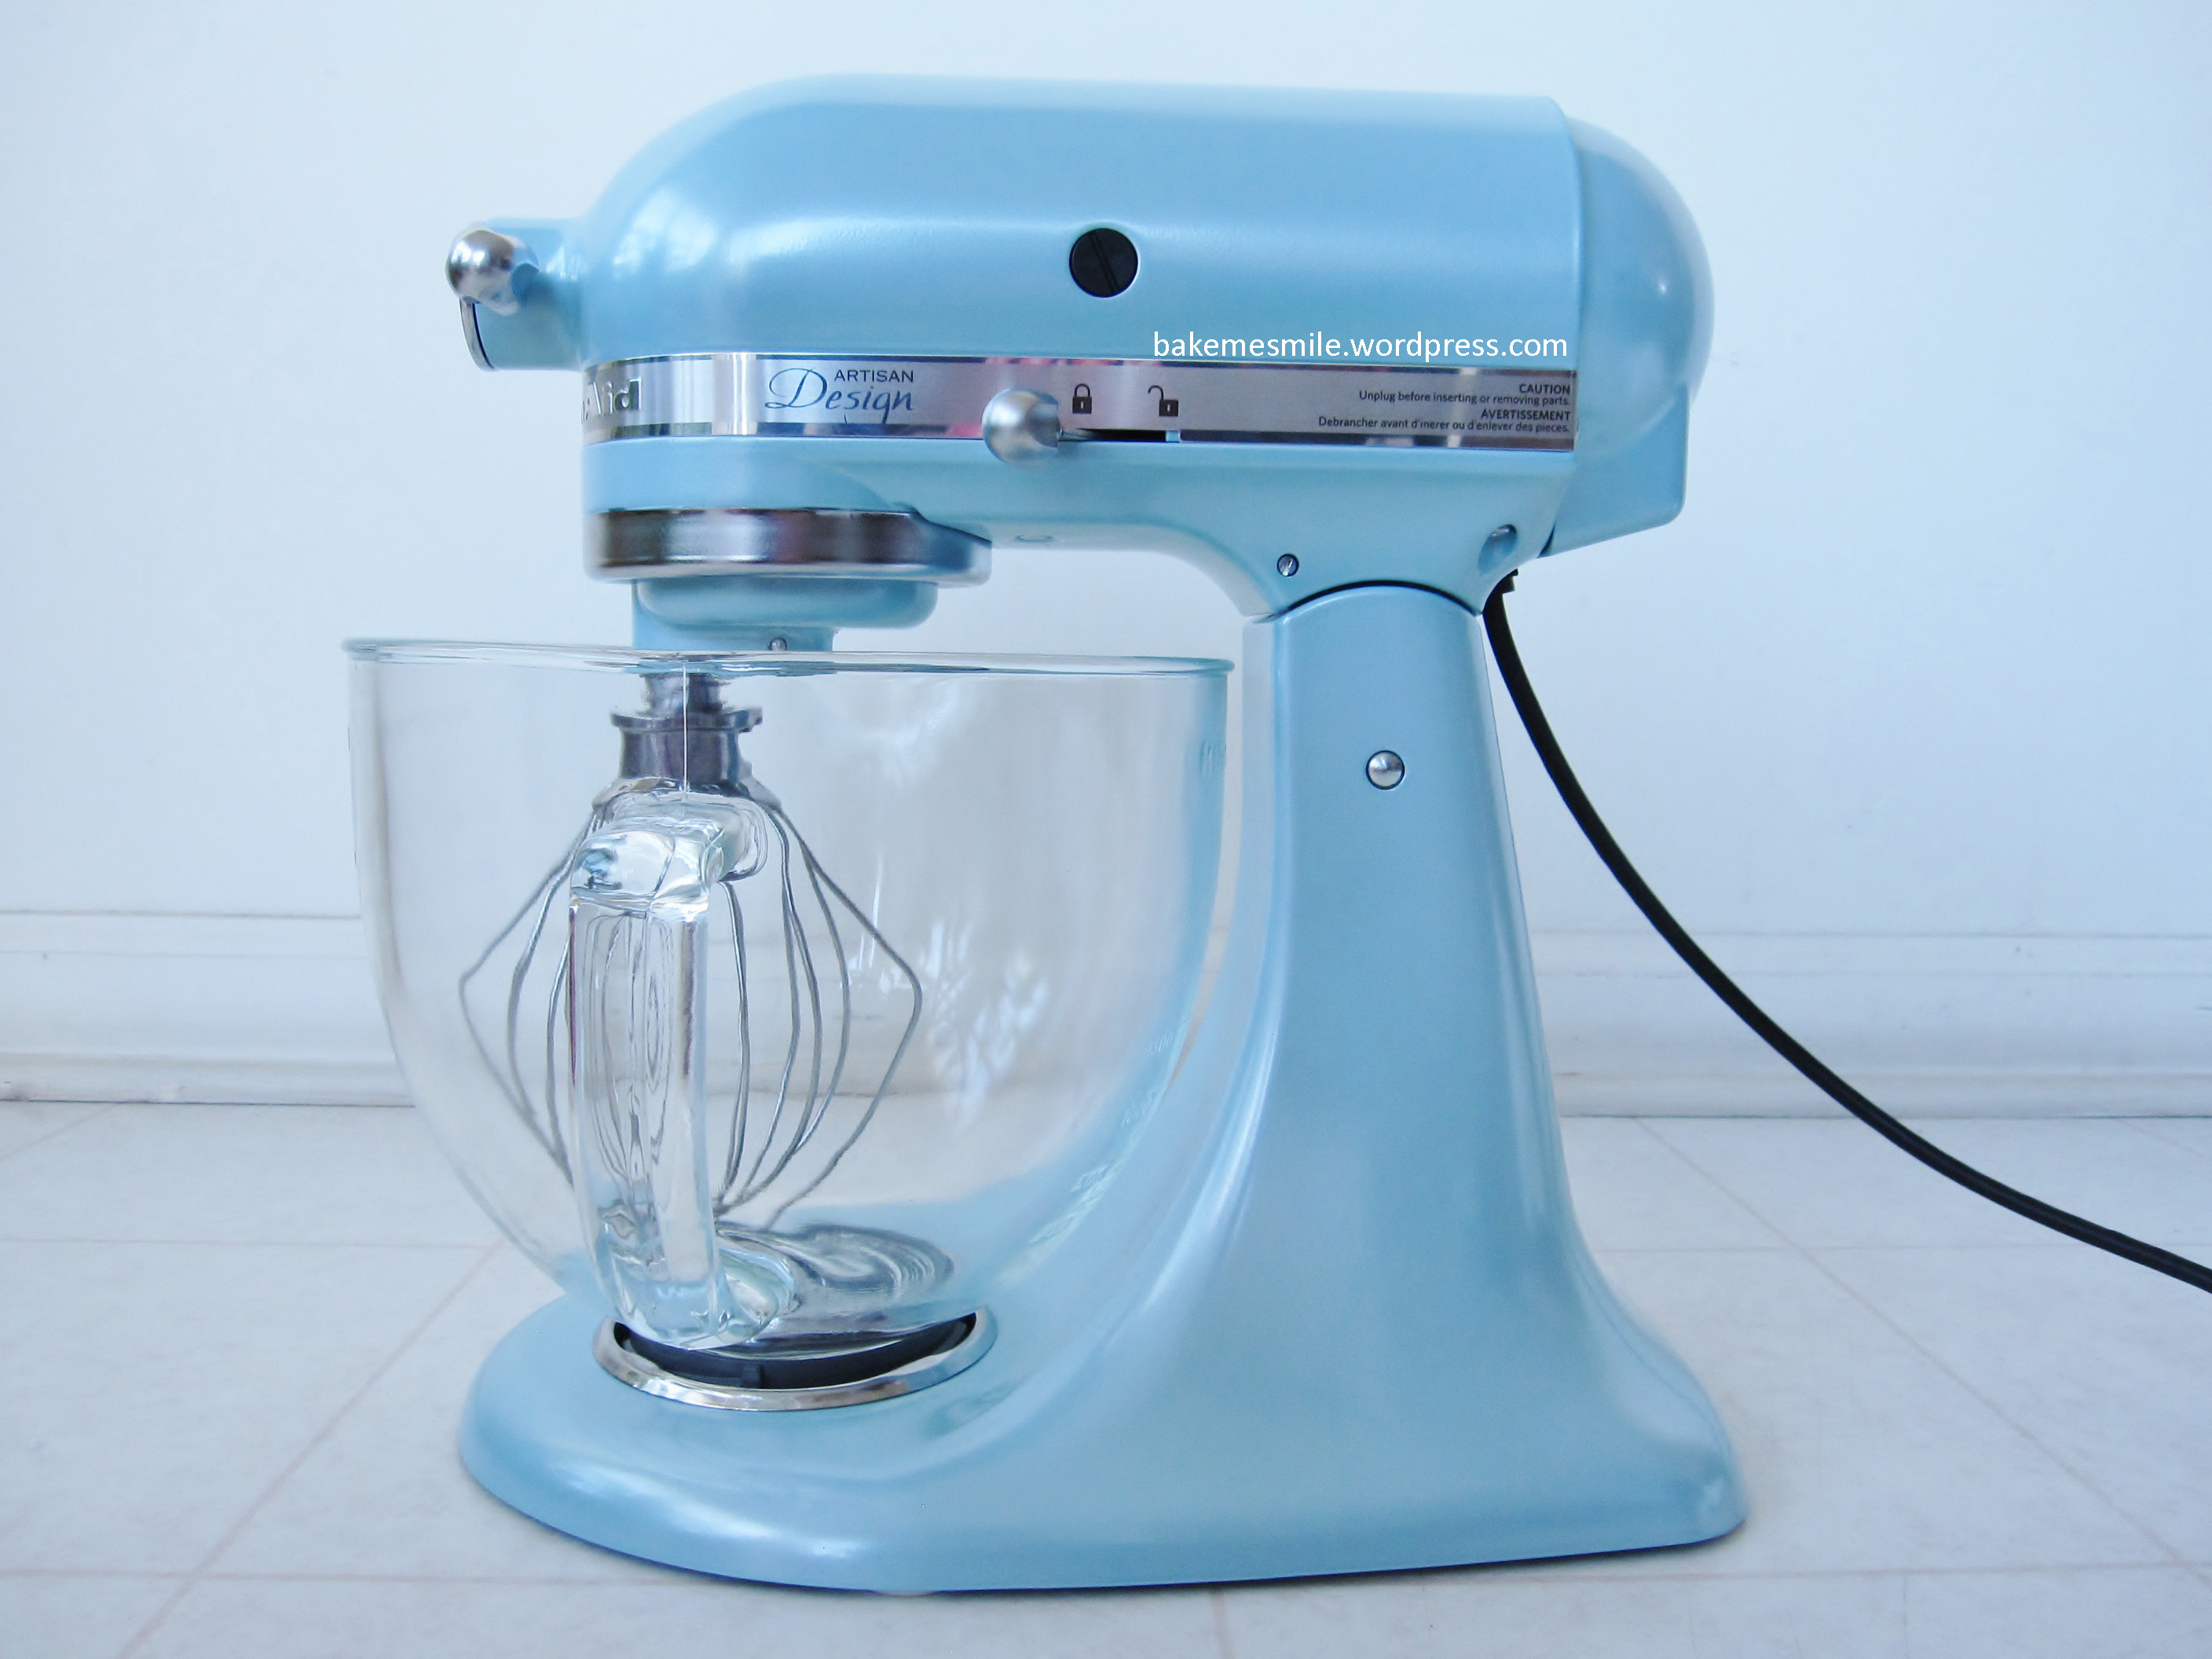 kitchen aid pasta press lowes stainless steel sinks kitchenaid stand mixer: azure blue | bake me smile